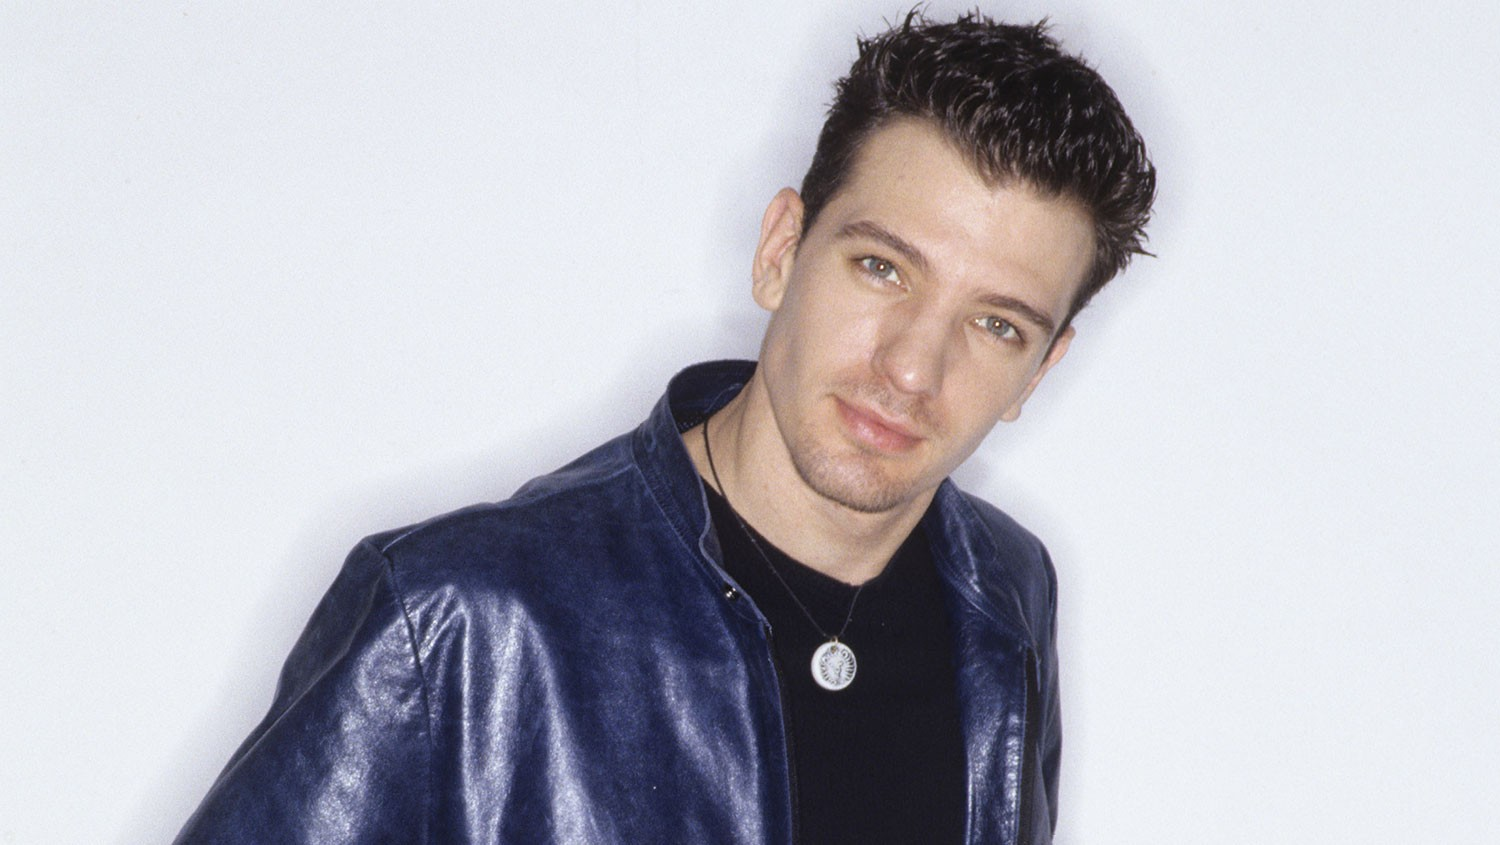 Digital Get Downs, Memes and Y2K's Joyride: *NSYNC's JC Chasez Reflects on 20 Years of 'No Strings Attached'